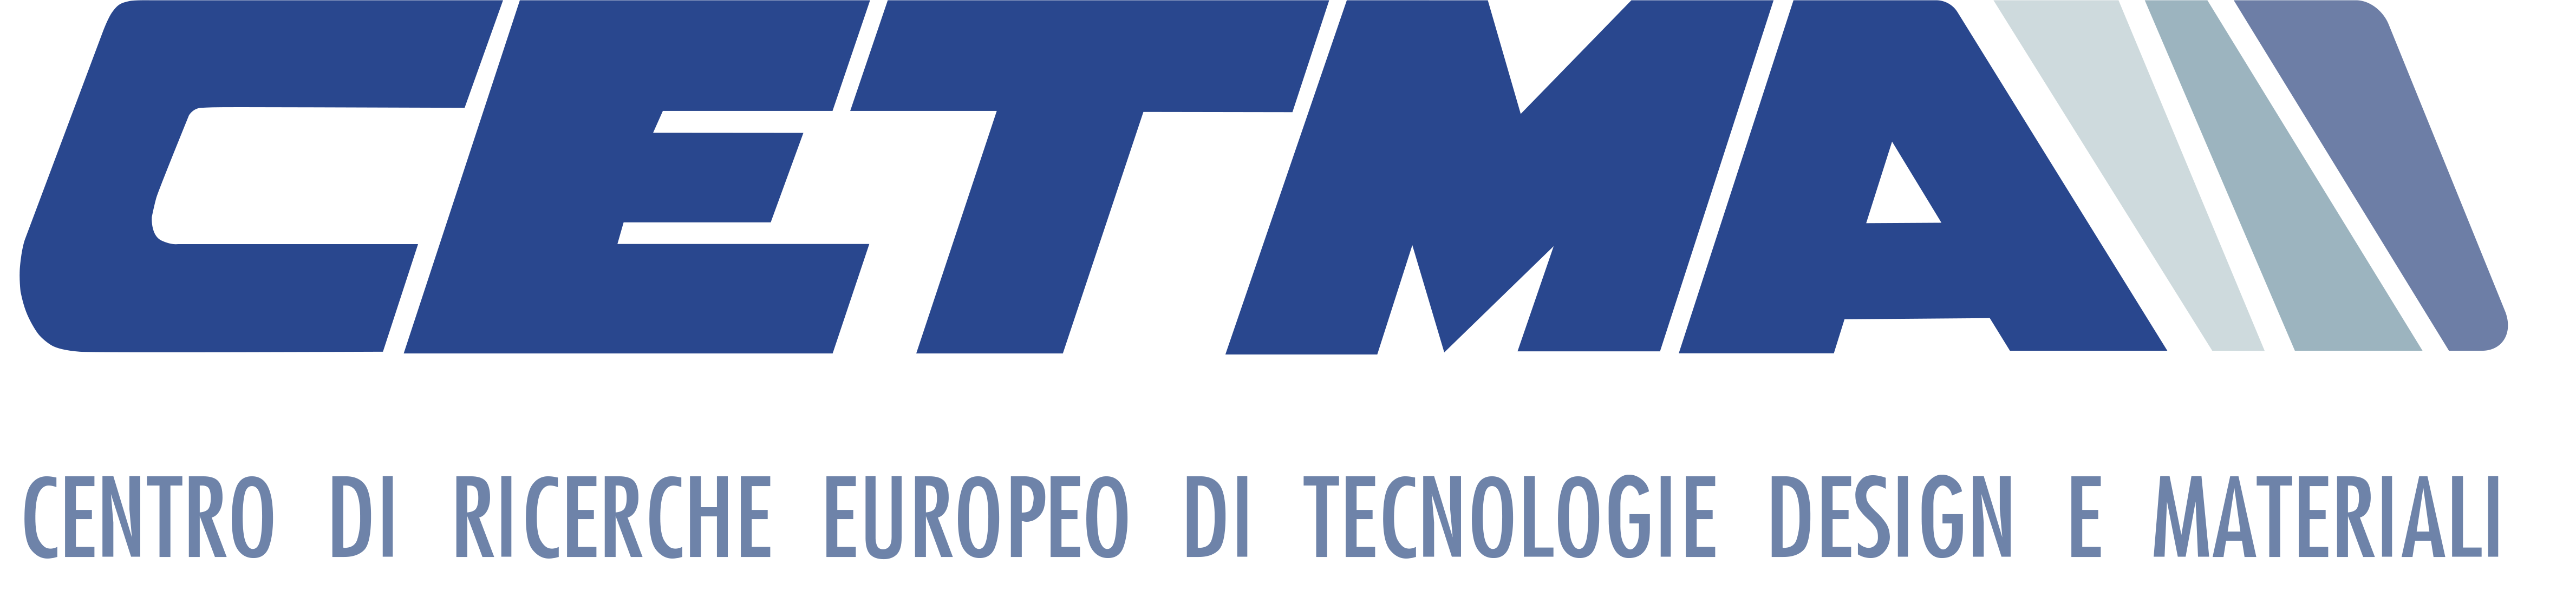 01-Logo_Cetma_2017_IT_1562162177 (1)